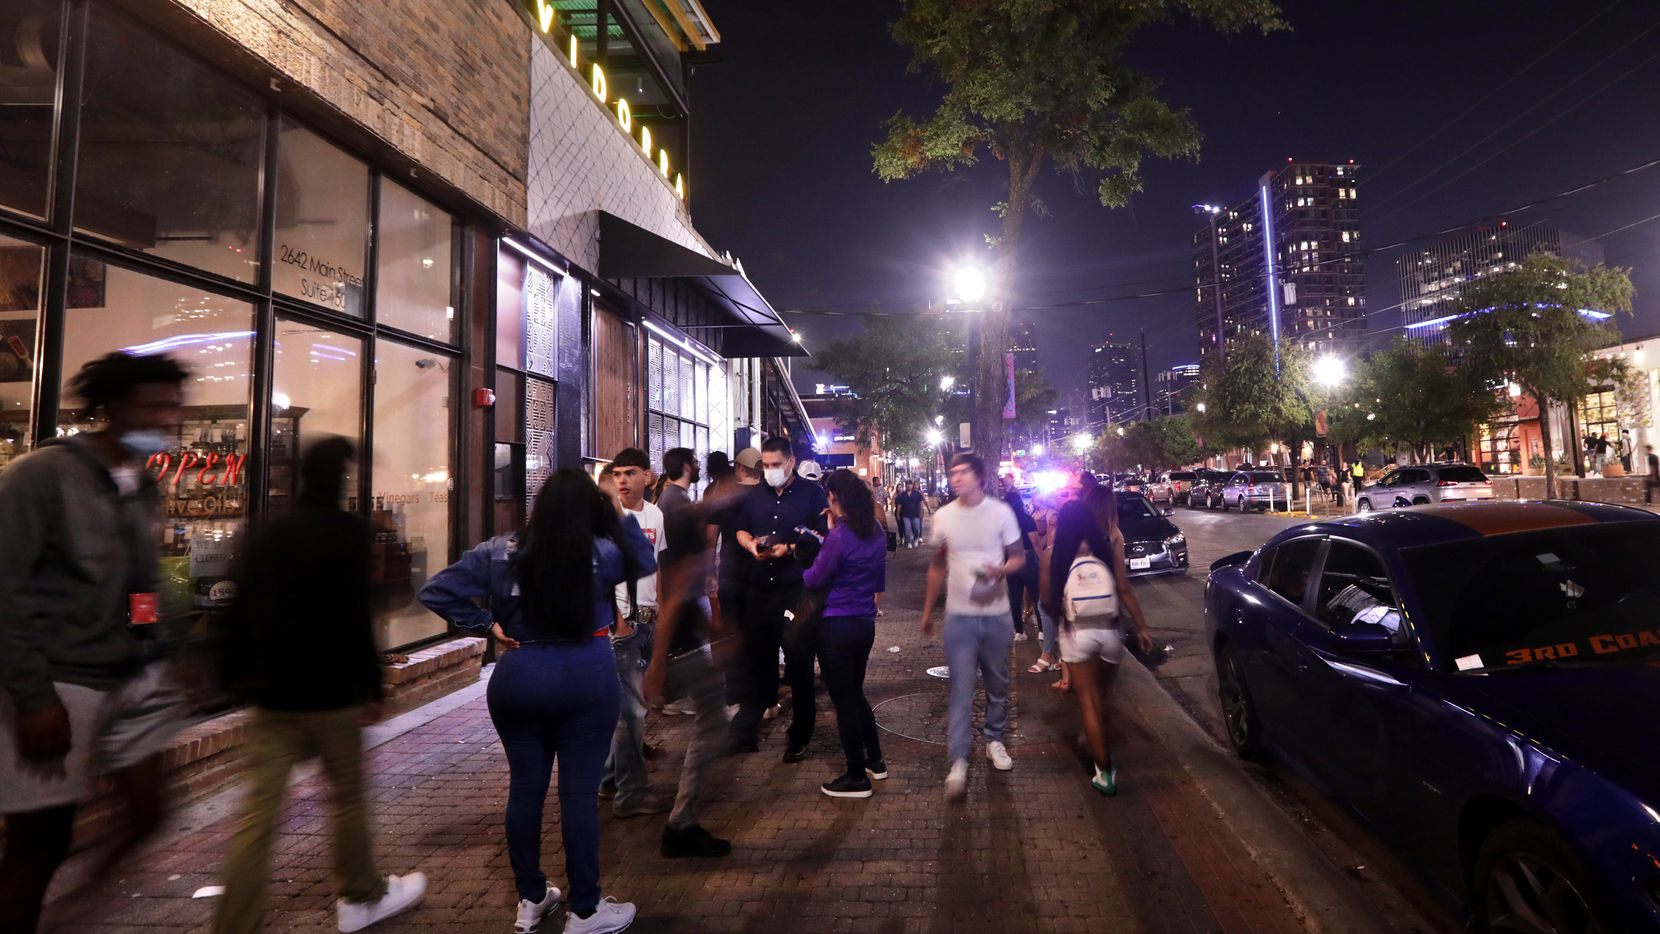 This photo from Aug. 27, 2021, shows people looking for food, drinks, music, and fun in a reenergized Deep Ellum.